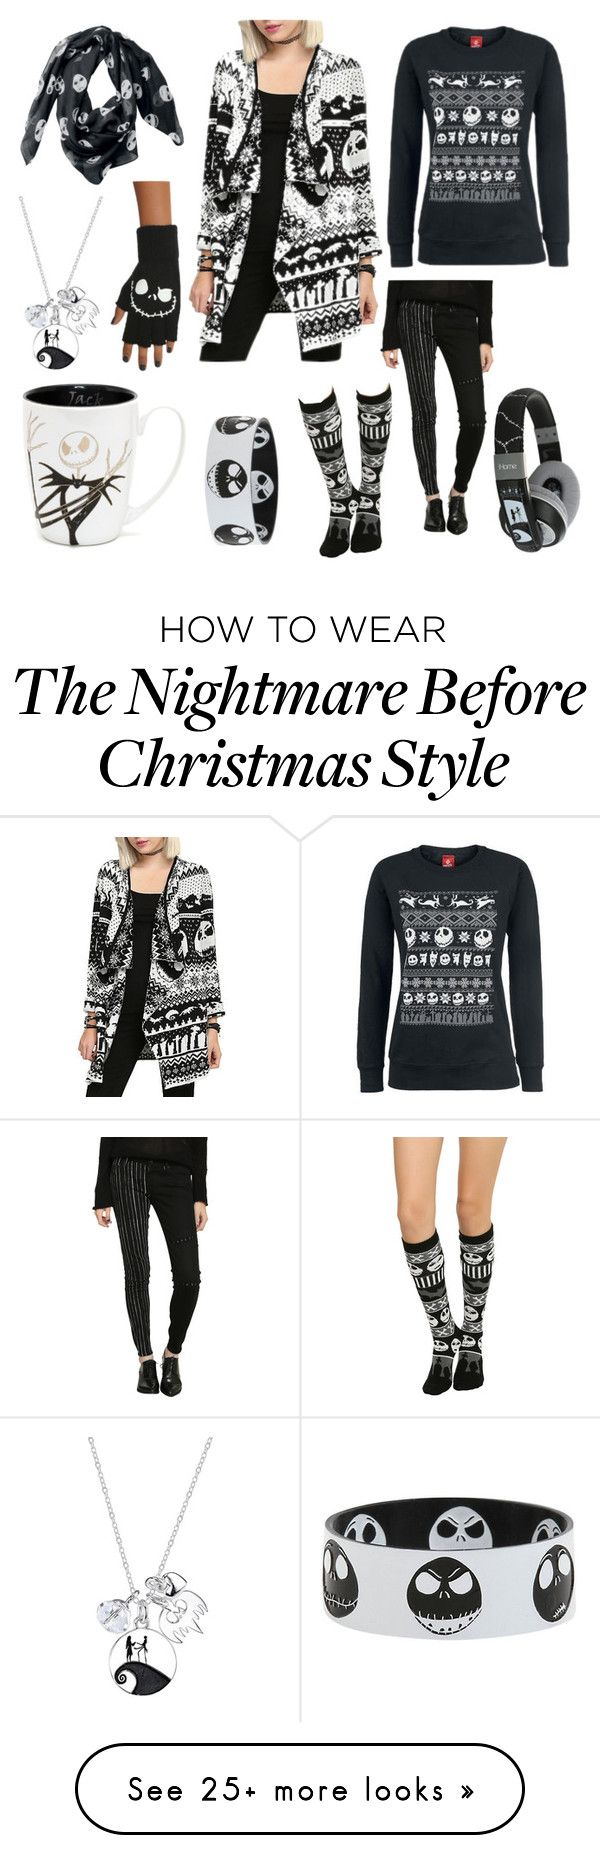 """The Nightmare Before Christmas Stuffs/Outfit"" by ku-chan on Polyvore featuring moda, Disney, blackandwhite, movie, skeletons y Thenightmarebeforechristmas"